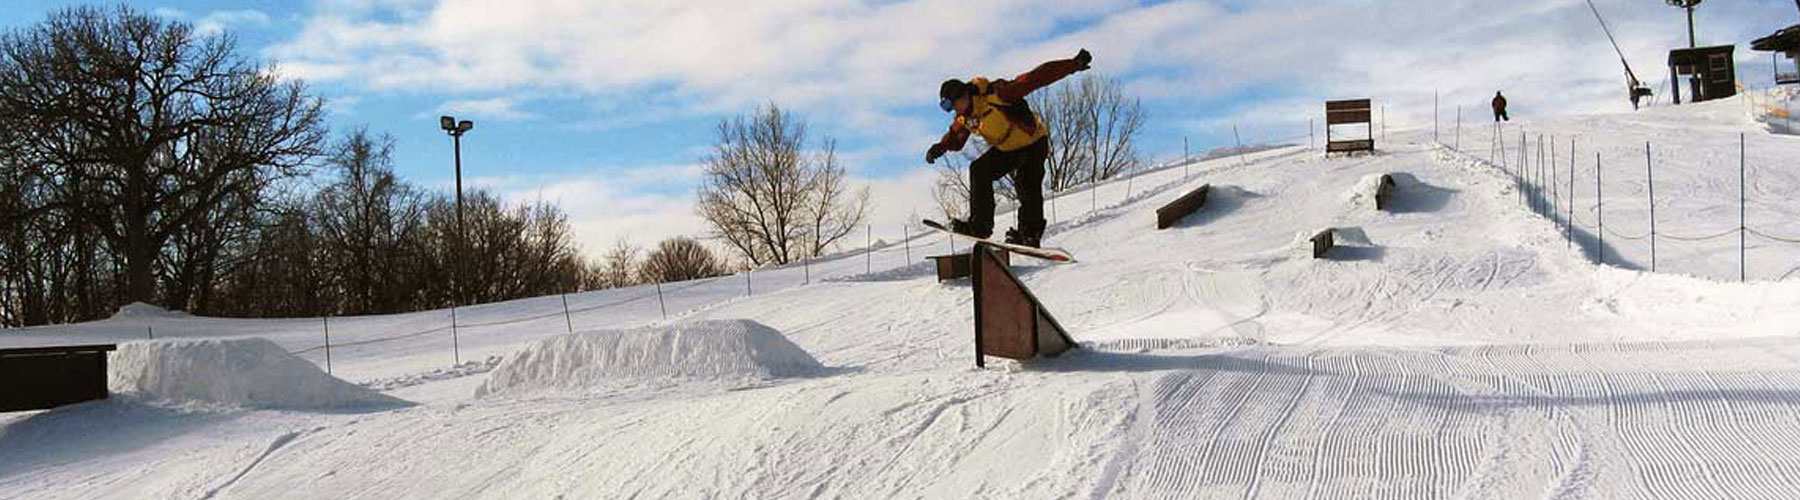 Snowboarding at The Mountain Top